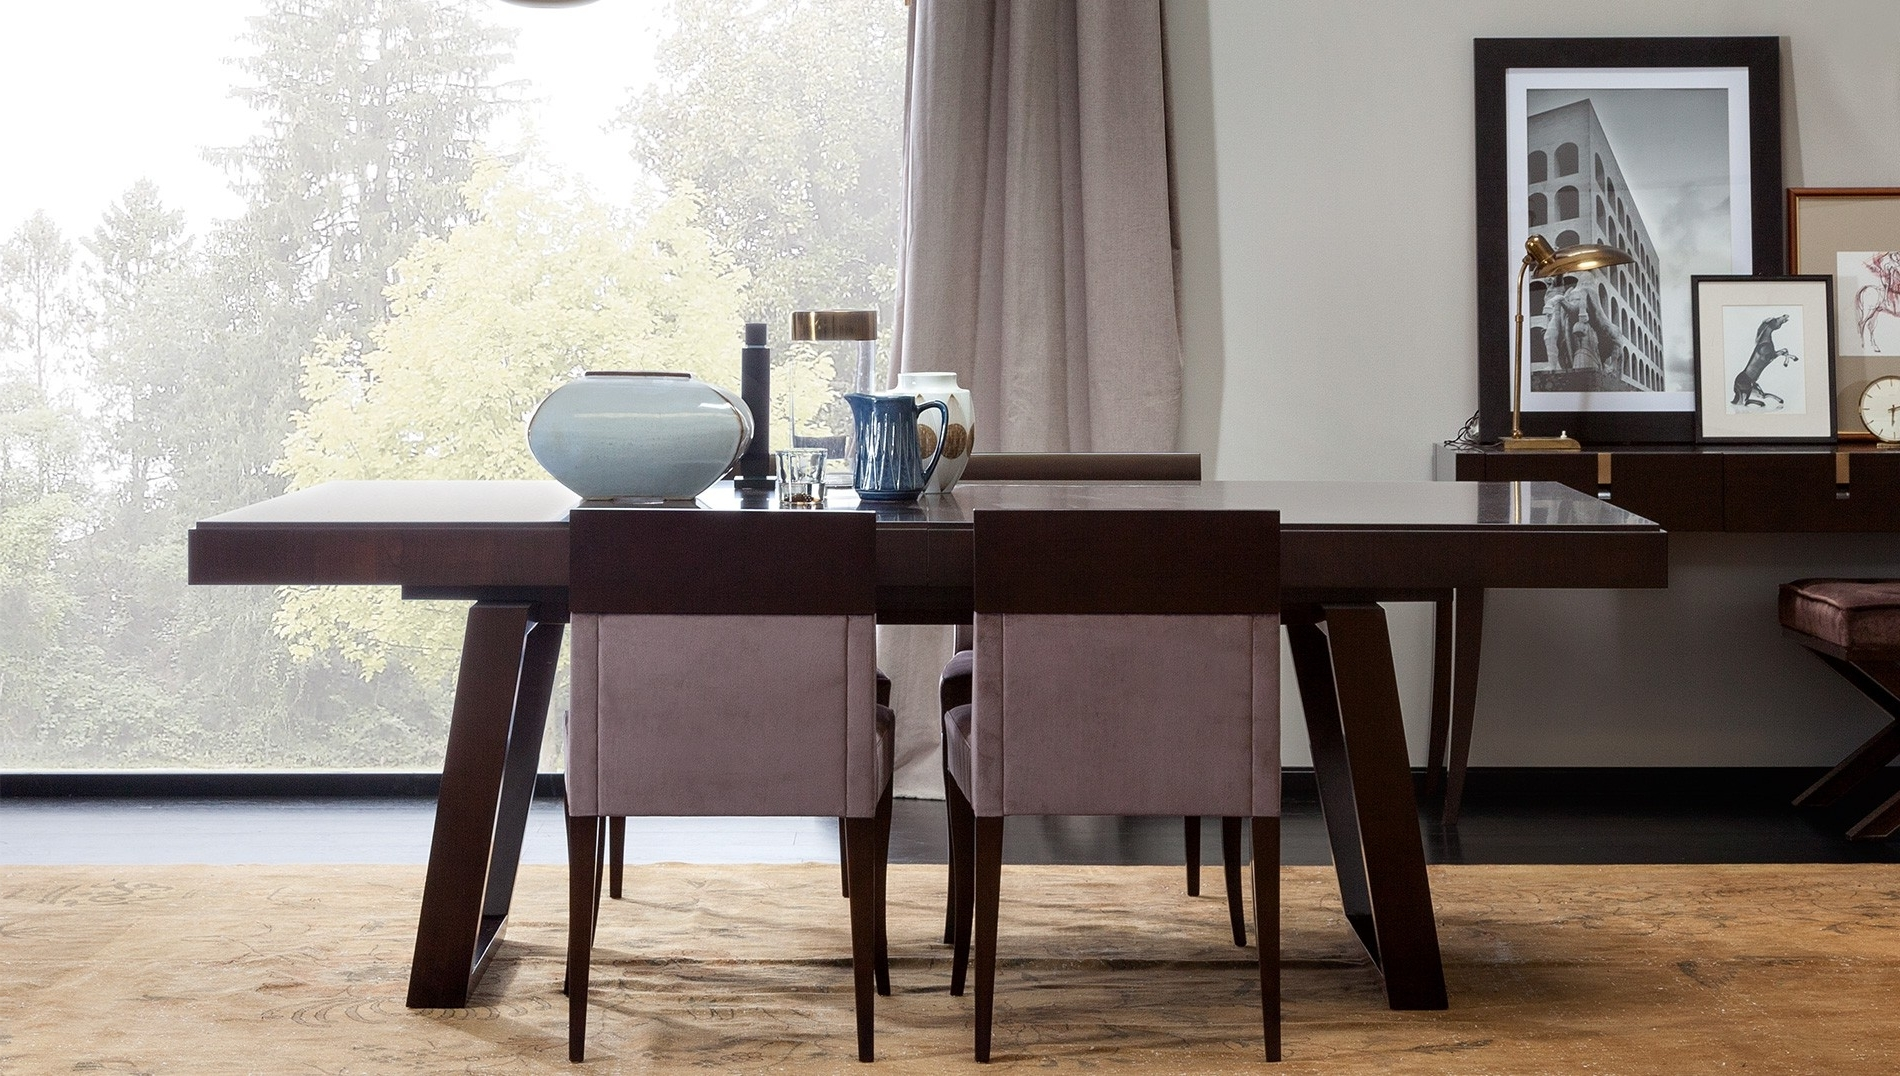 2017 Extendable Dining Tables Sets With Selva, Vendome Extendable Dining Table, Buy Online At Luxdeco (View 1 of 25)